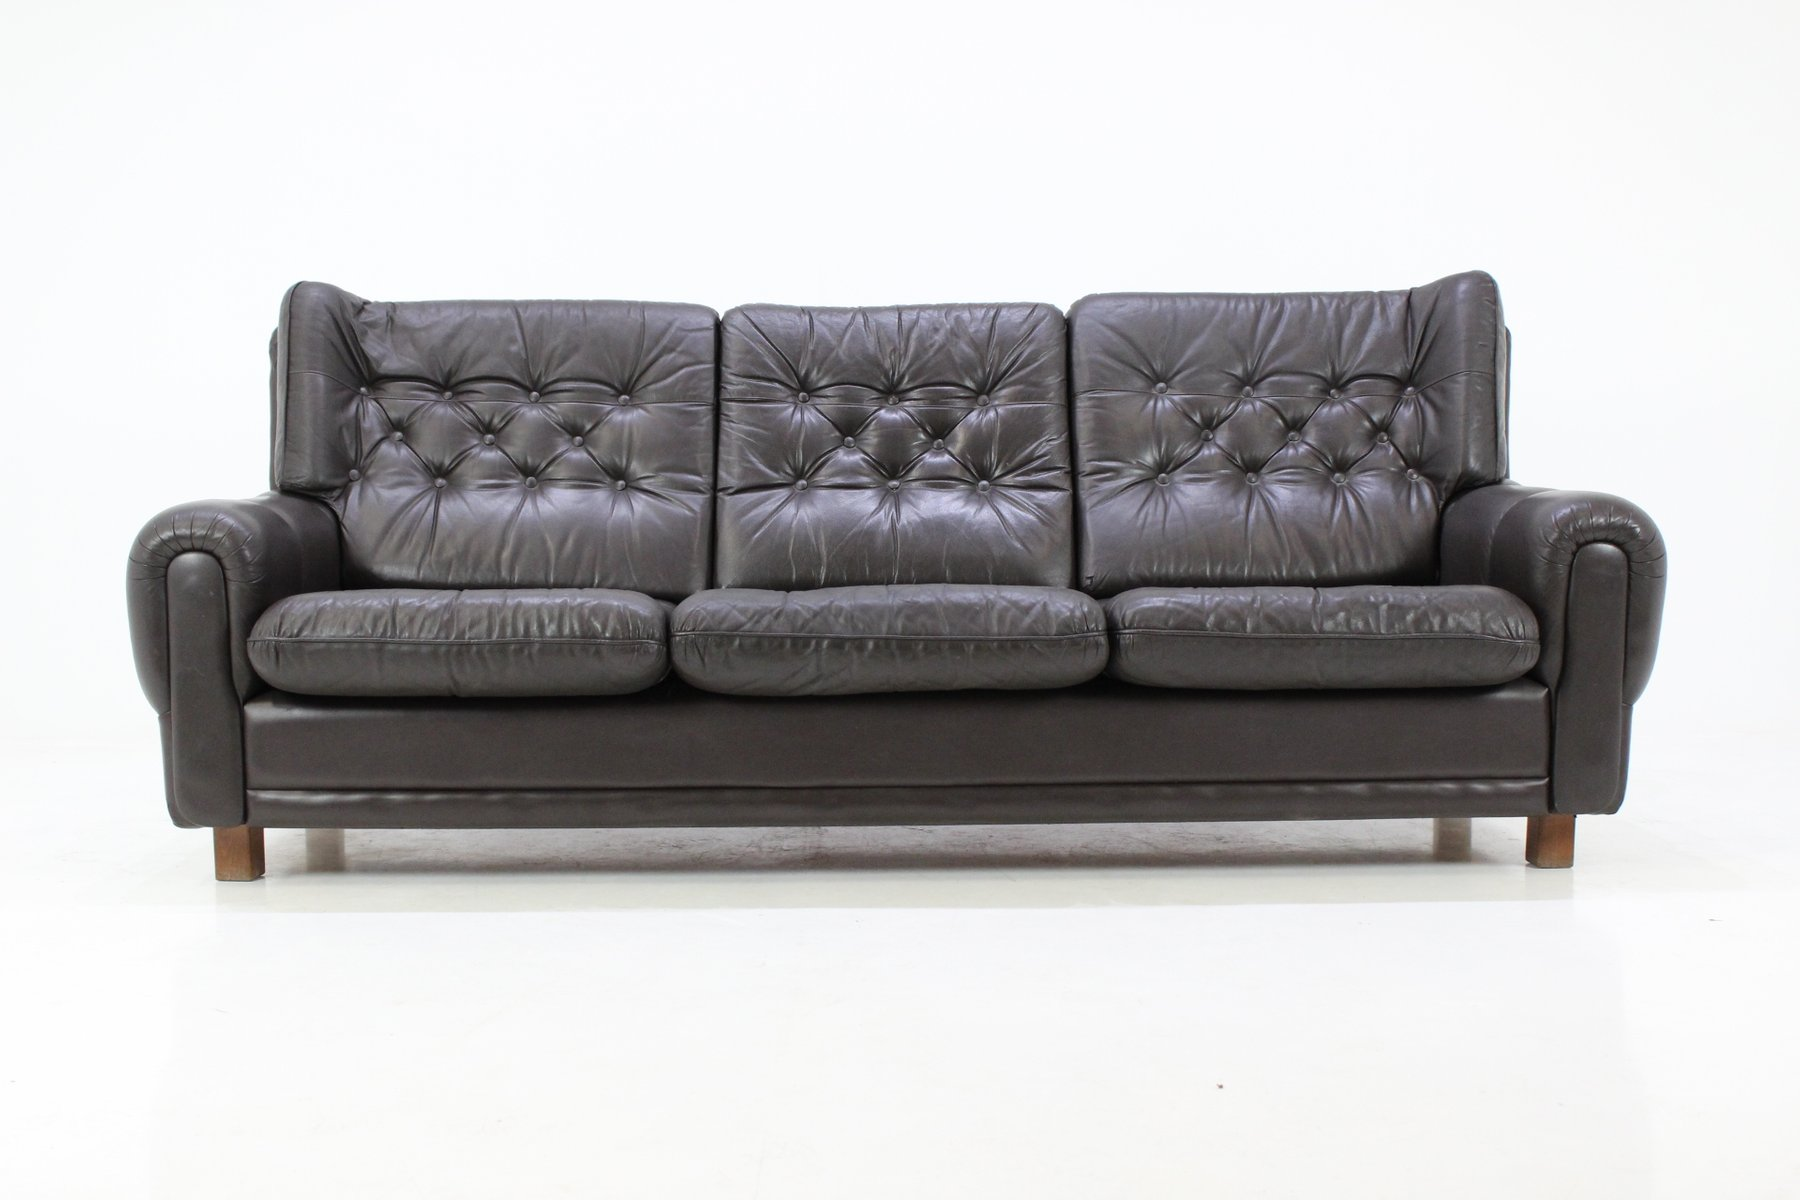 Czech Leather Brown Sofa 1970s for sale at Pamono